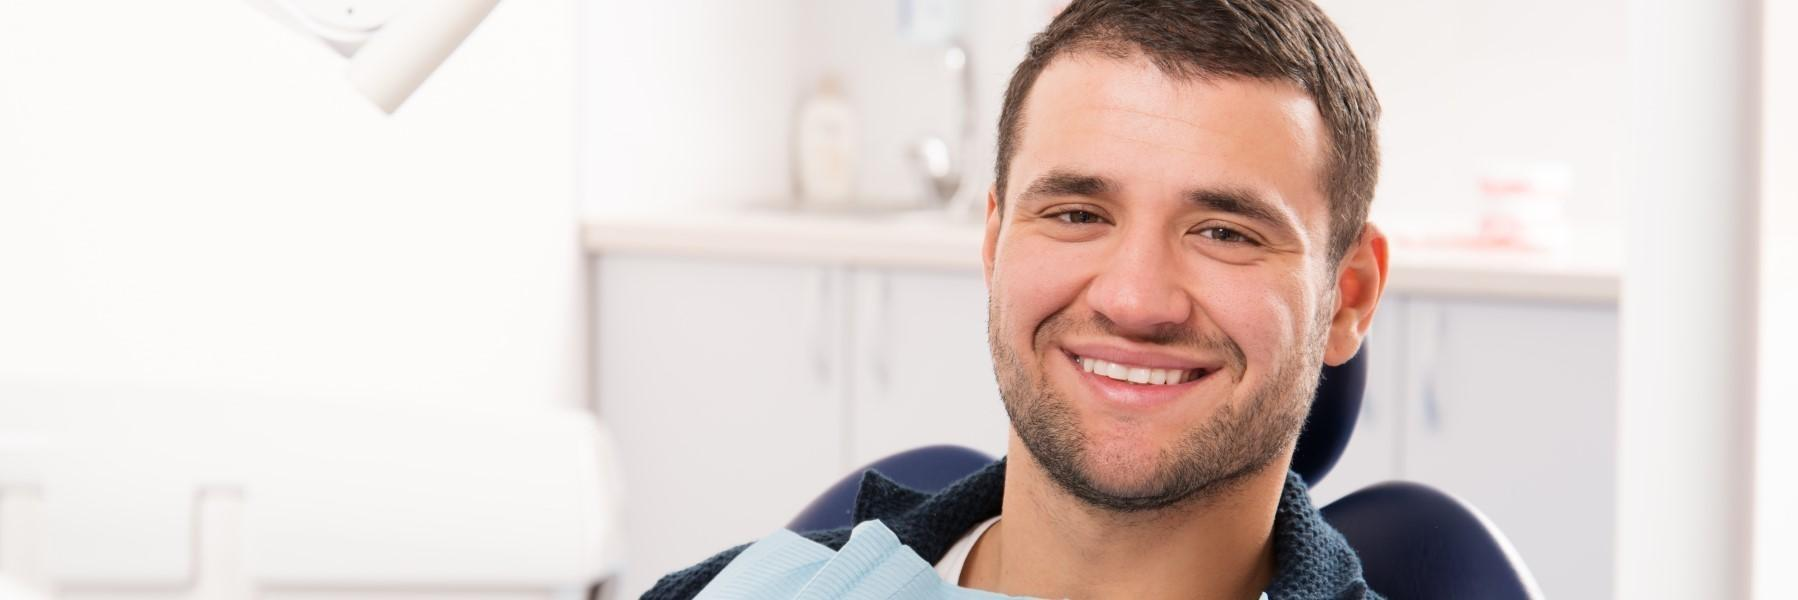 Dental Exam Patient | Gentry Dental